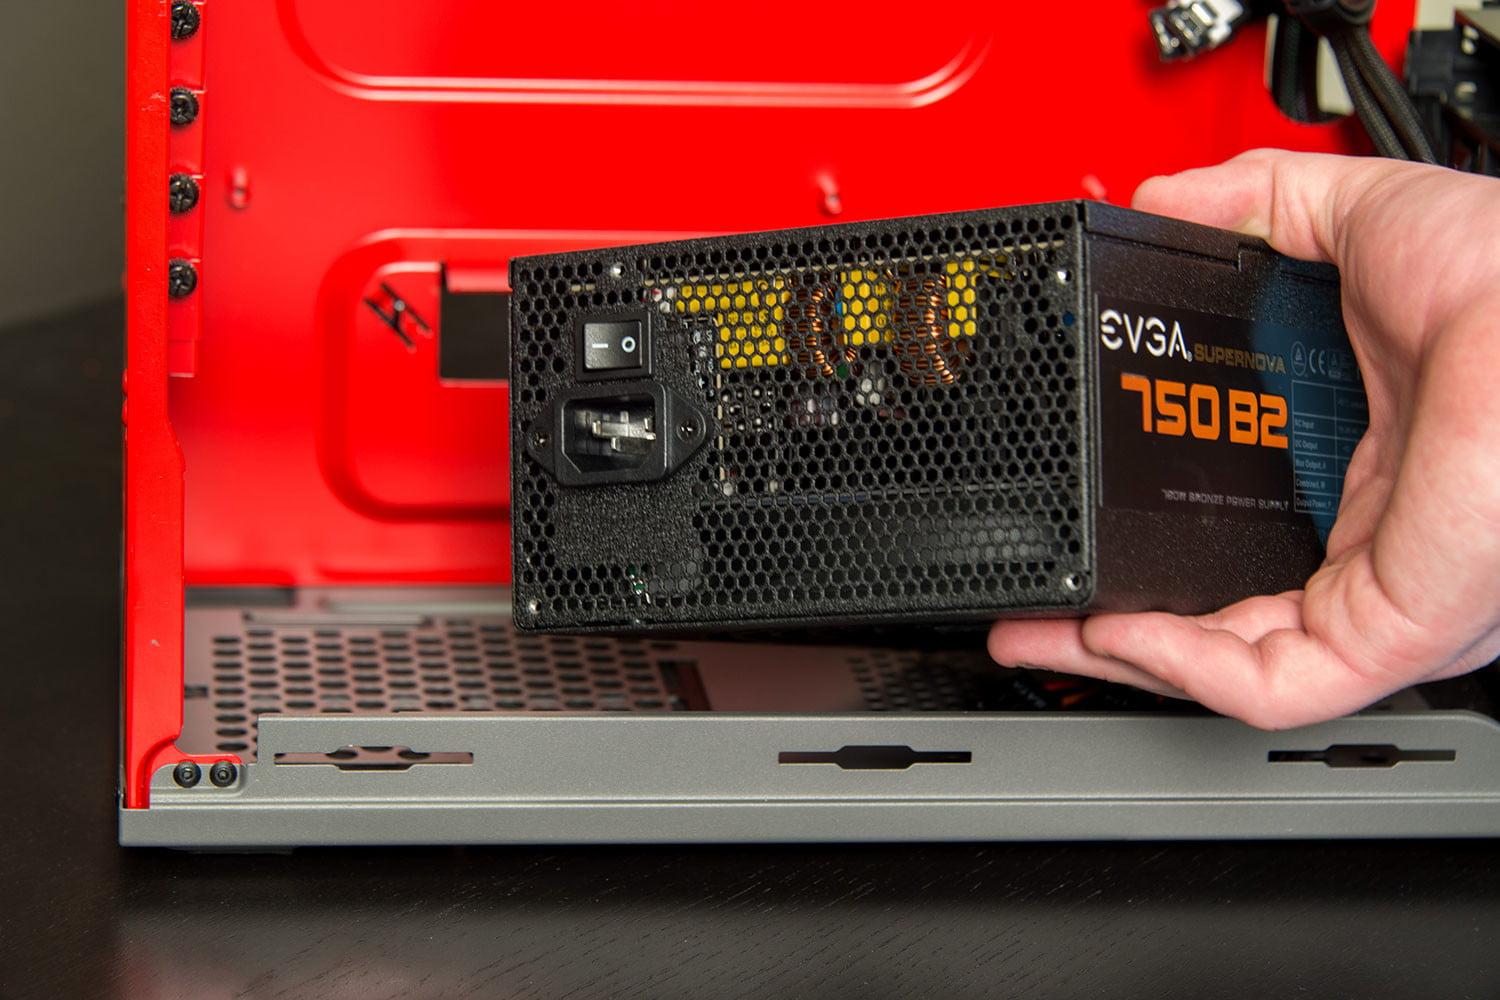 PC power supply in a case.